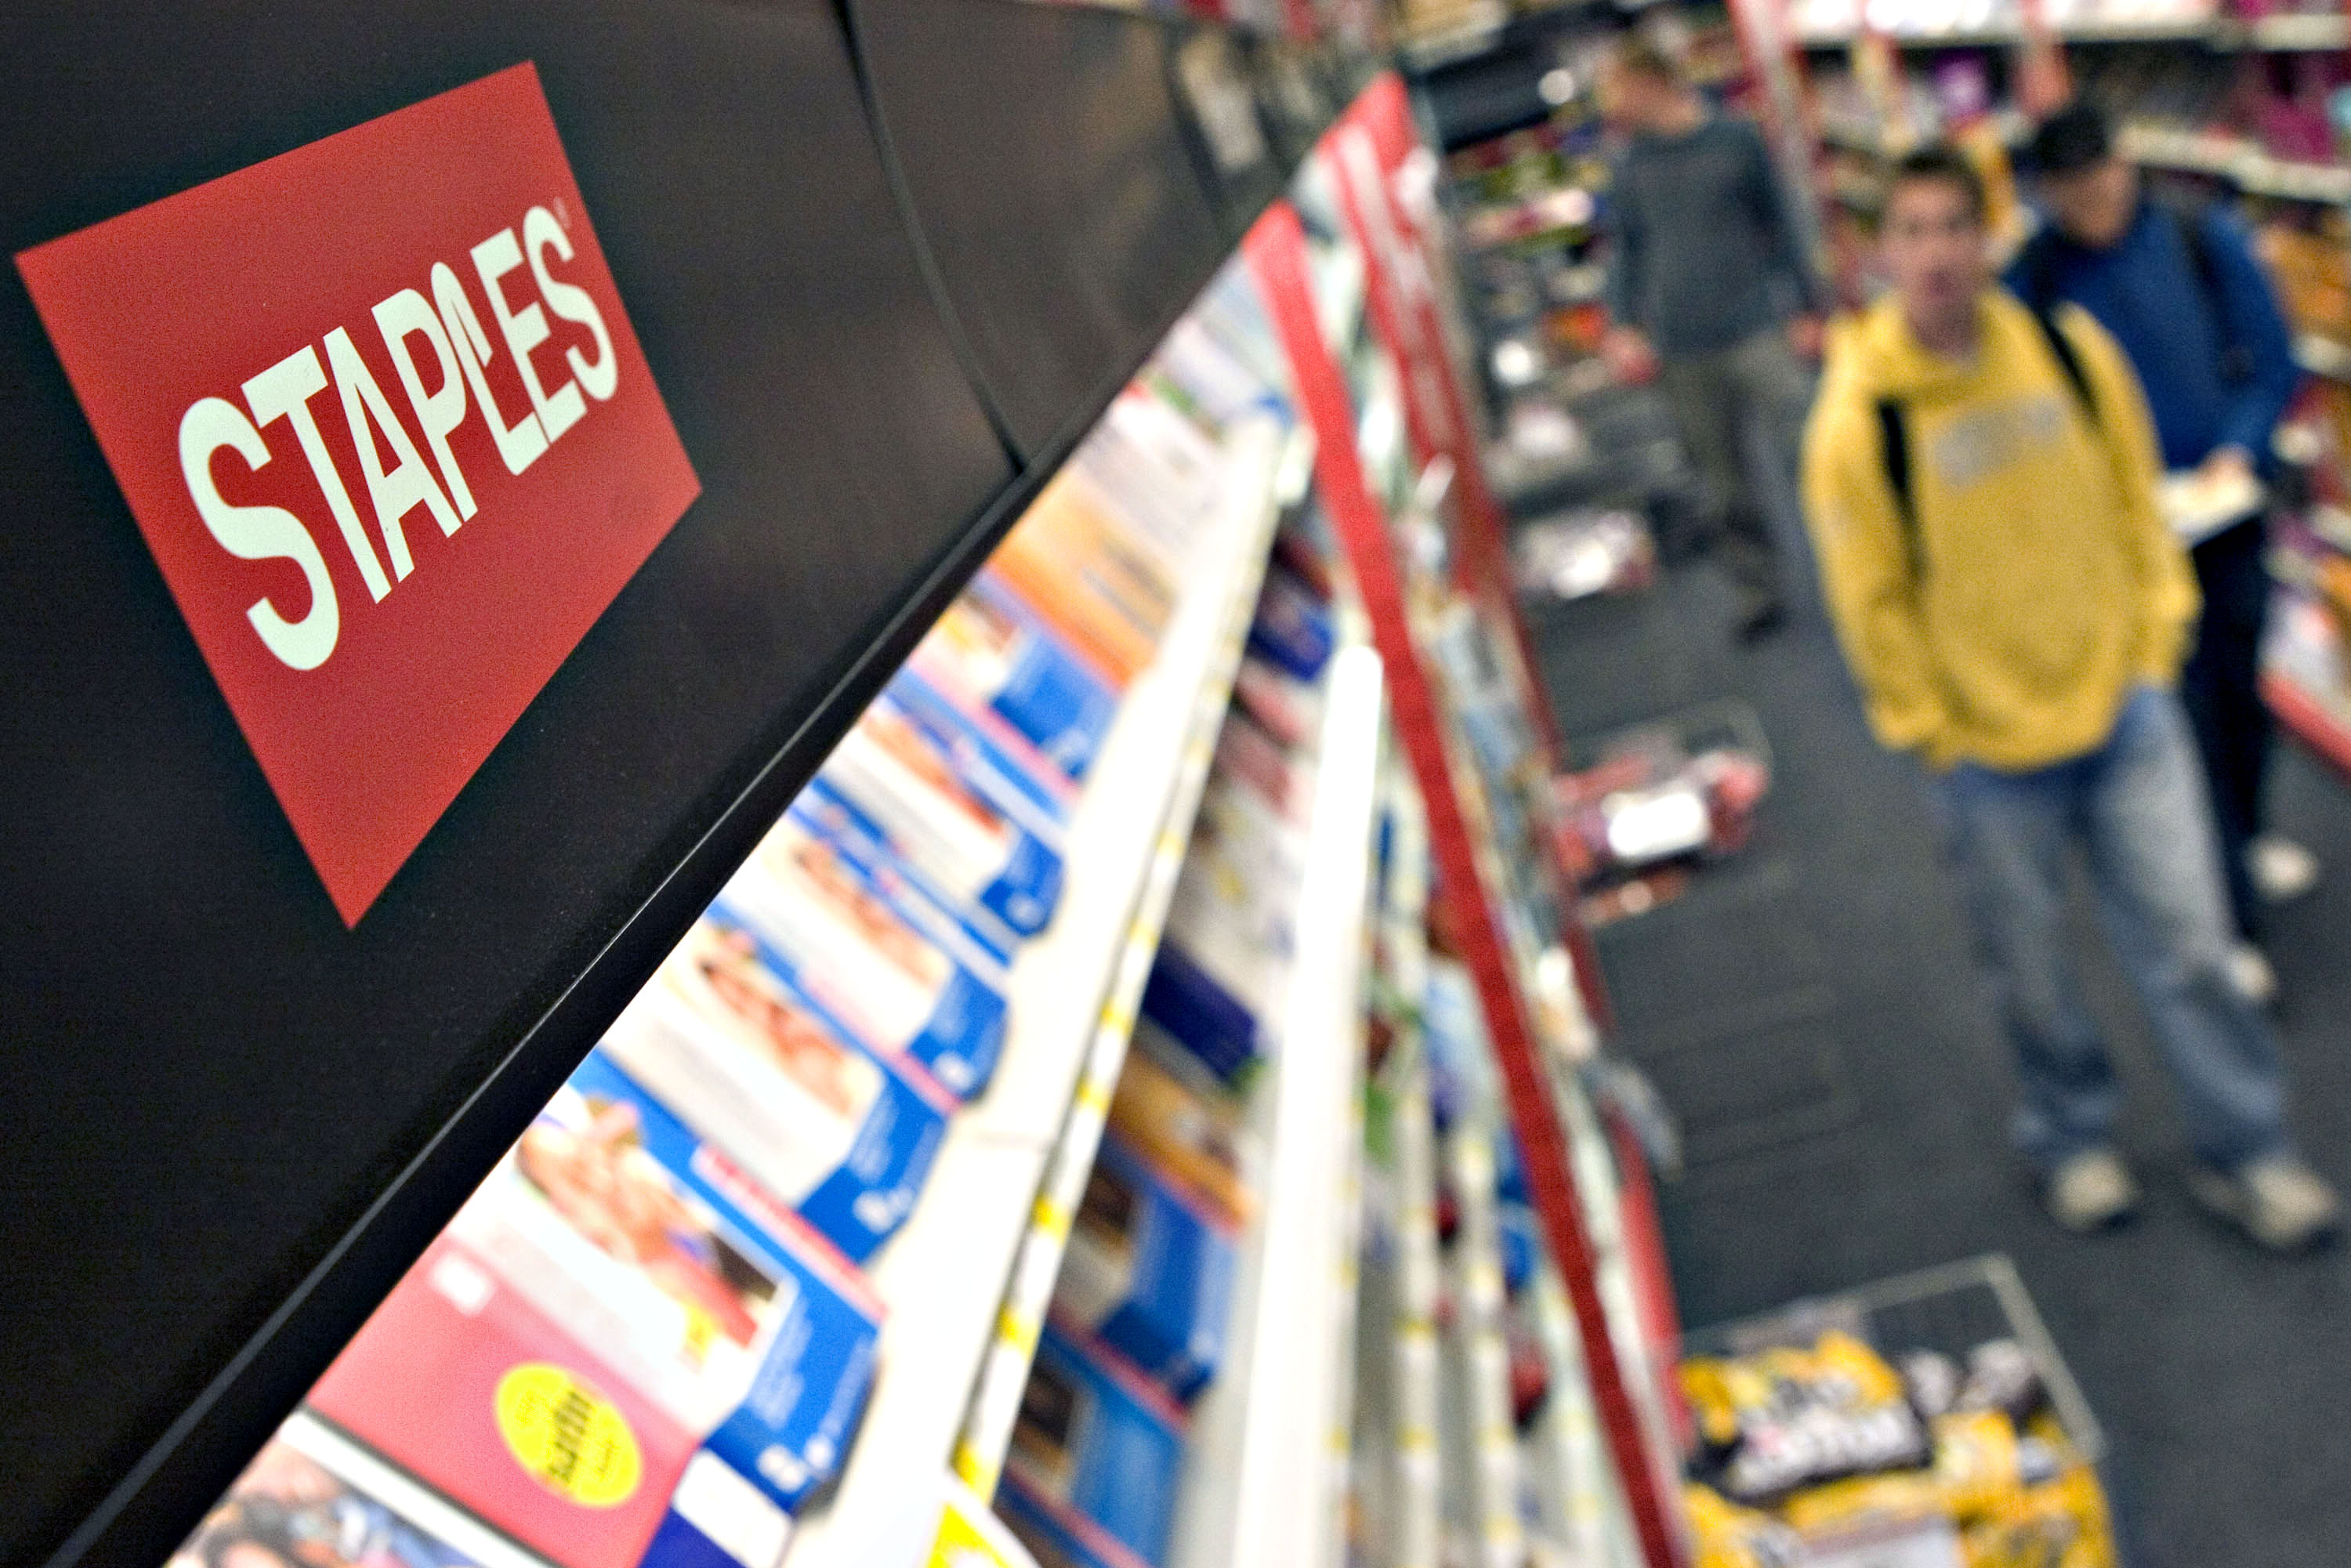 Customers shop inside a Staple's store in Allston, Massachus